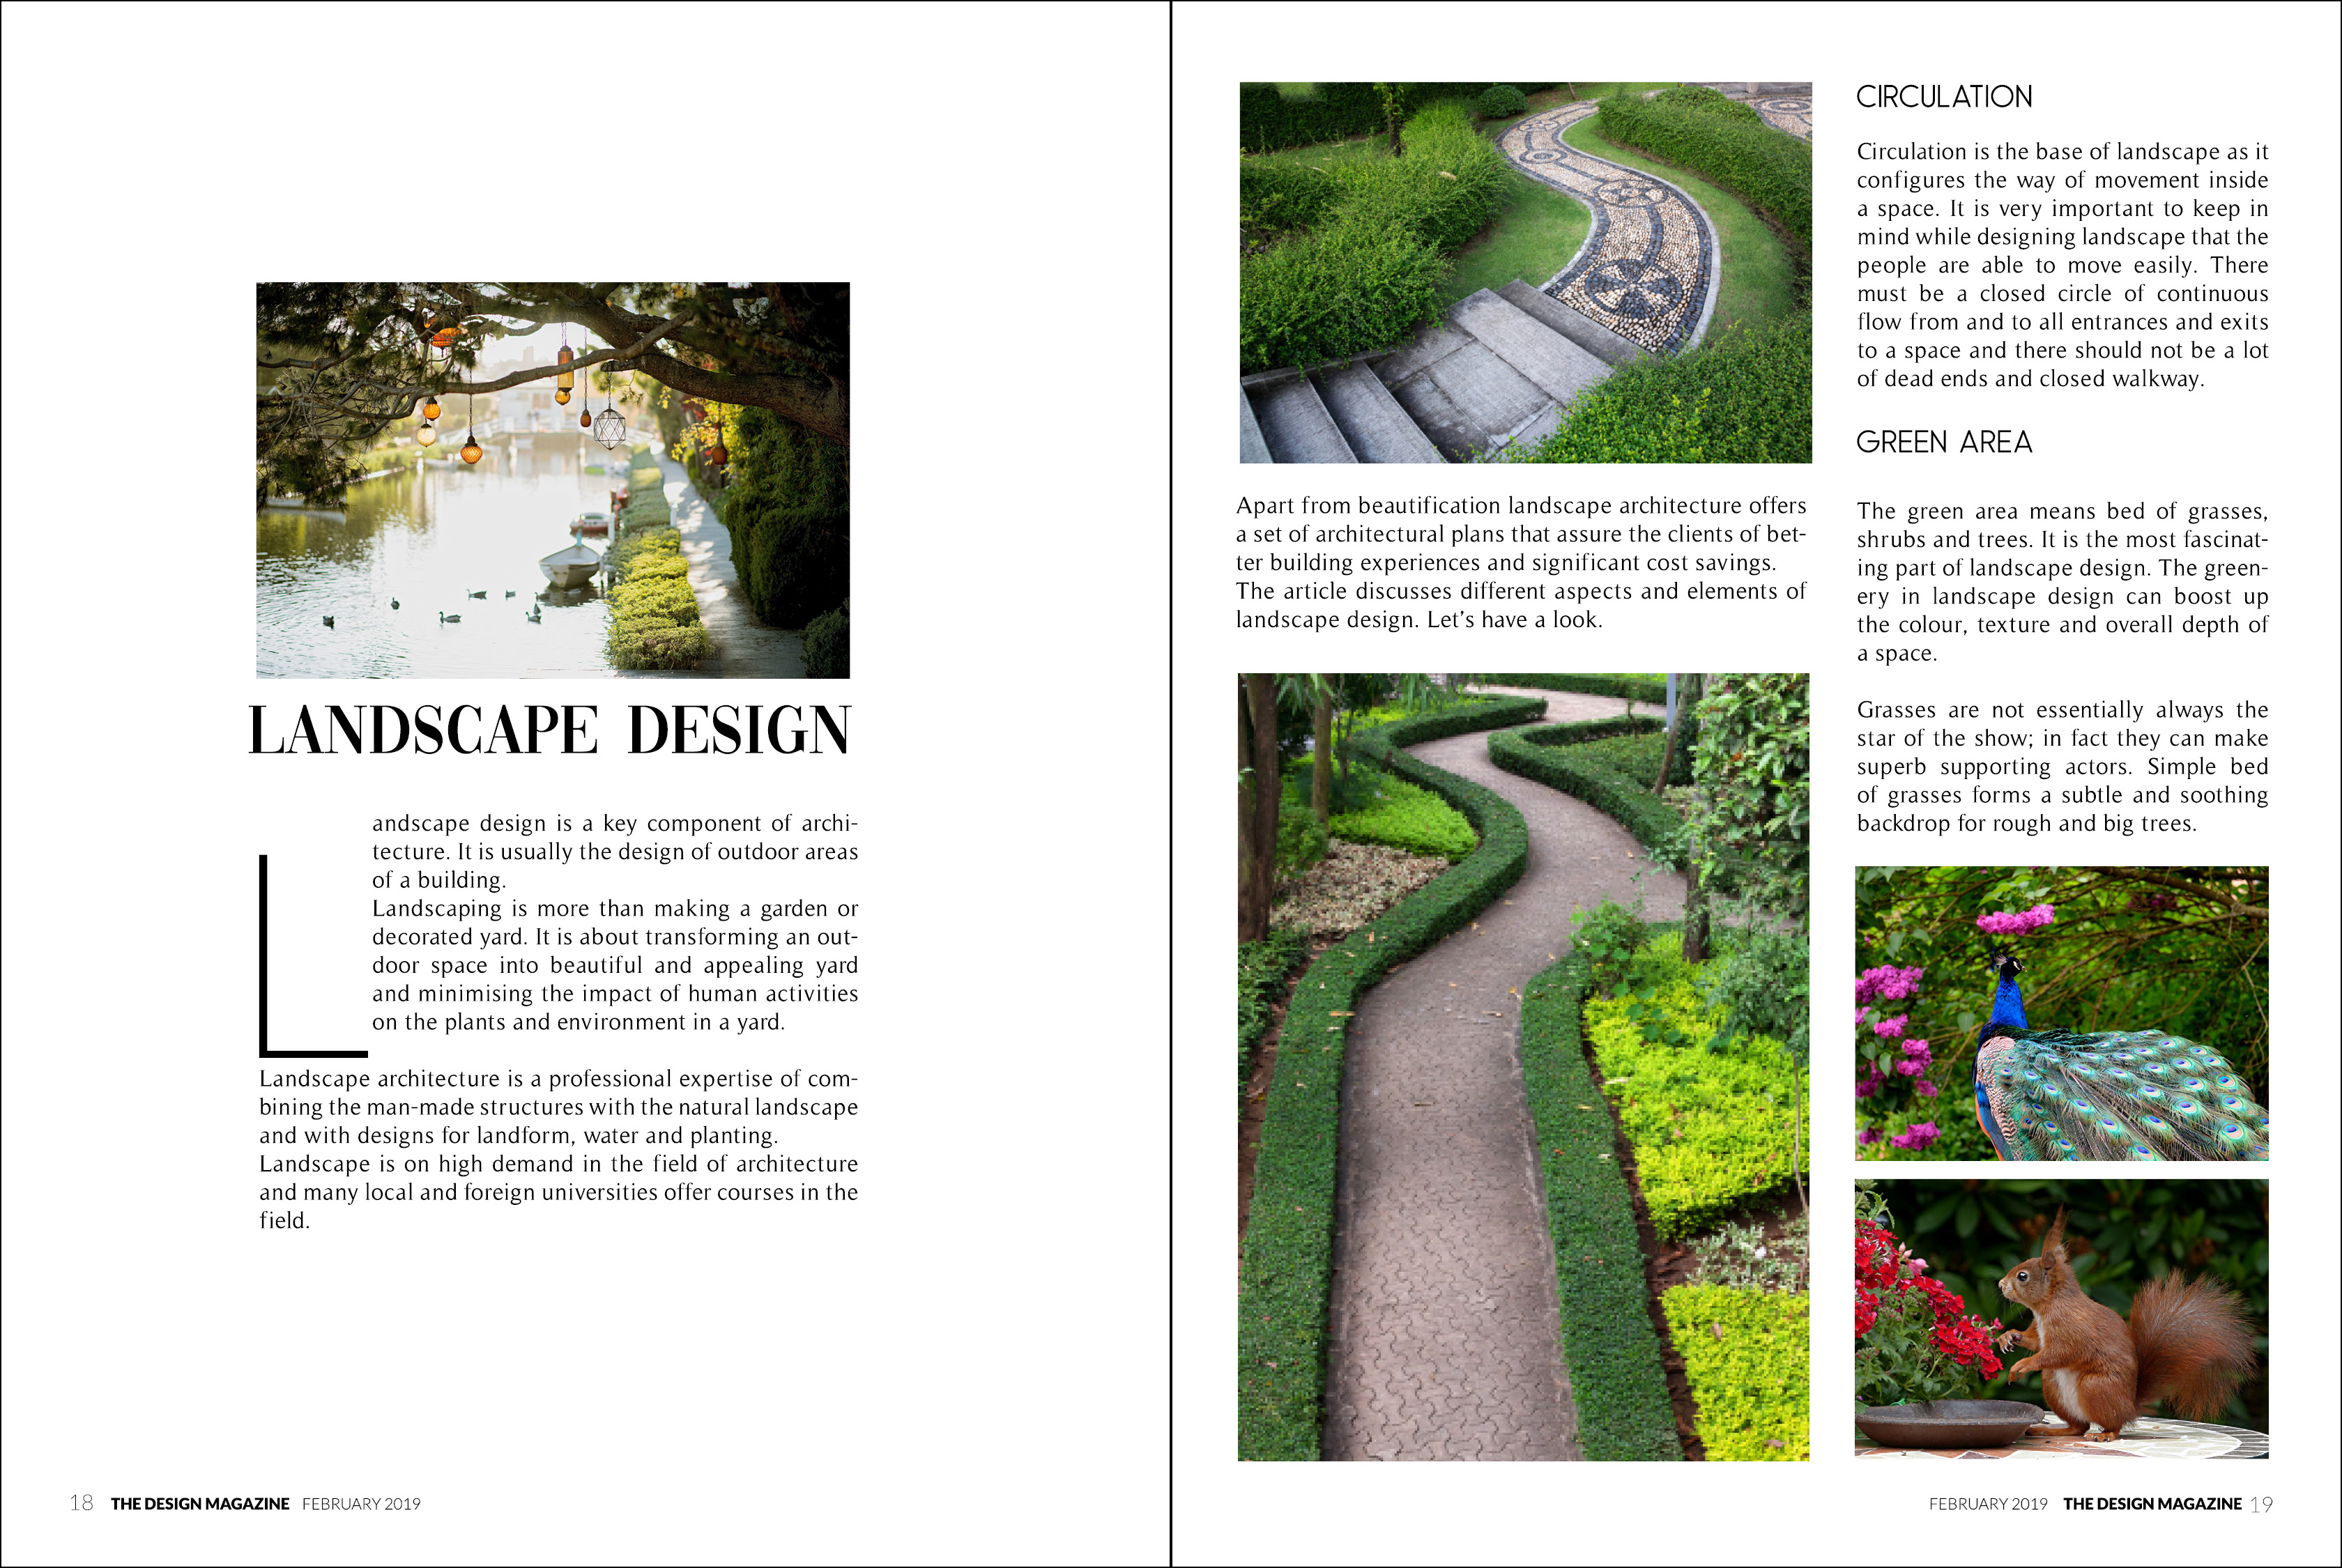 Landscape Design - The Design Magazine